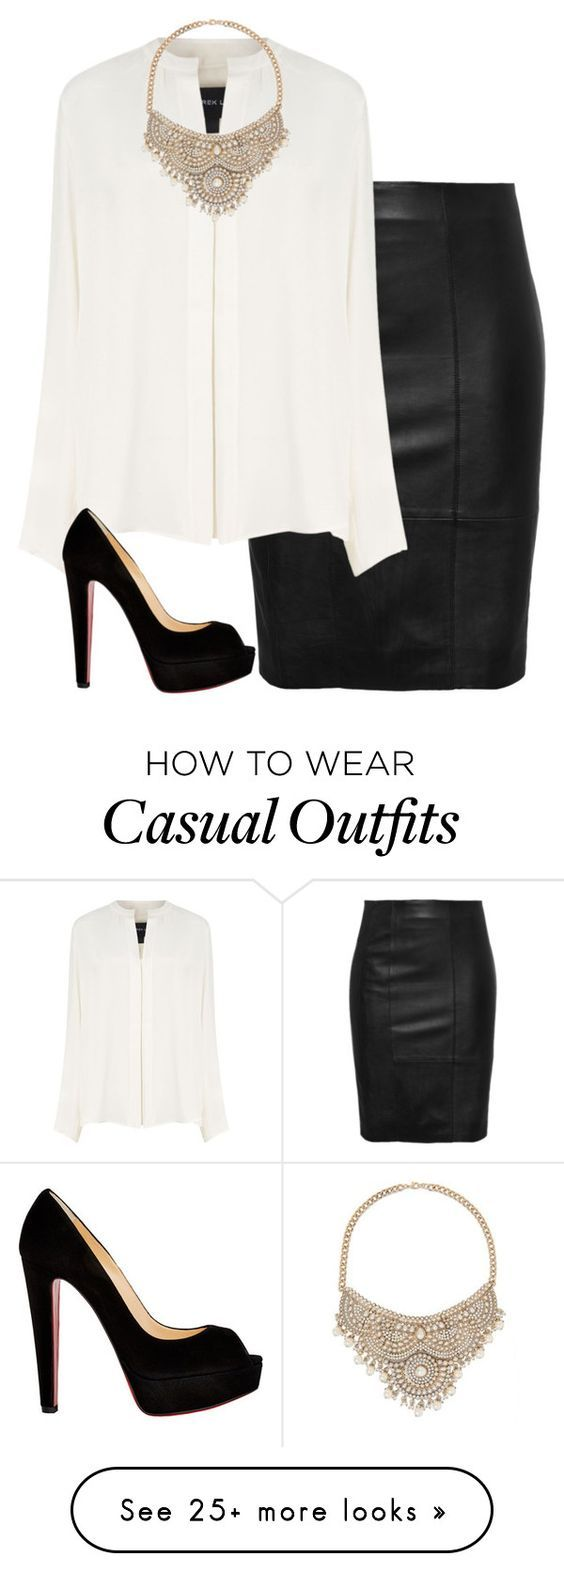 """""""NYC business casual"""" by i-am-bryana on Polyvore featuring Derek Lam, Christian Louboutin and Bebe"""